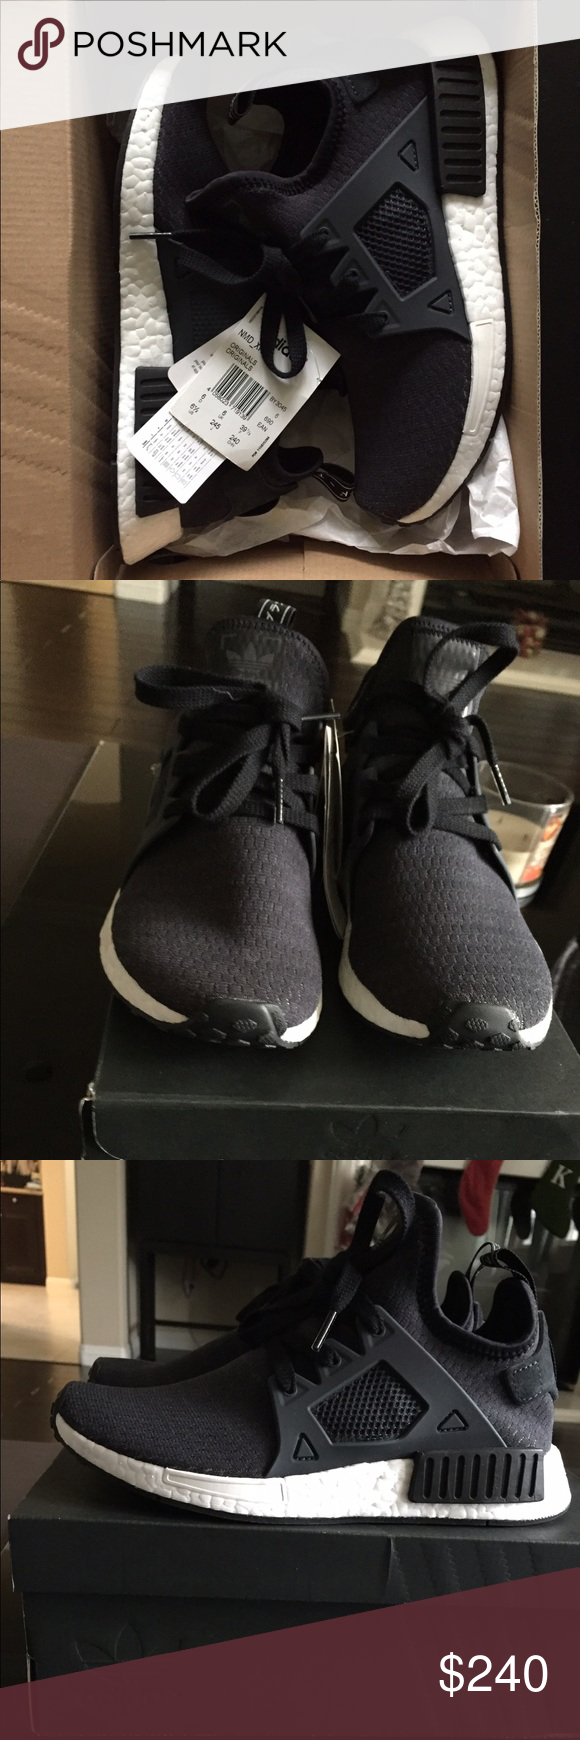 huge selection of 0a39a 6113b NMD XR 1 - BY3045 Brand New with Tag and Box, Exclusive JD ...